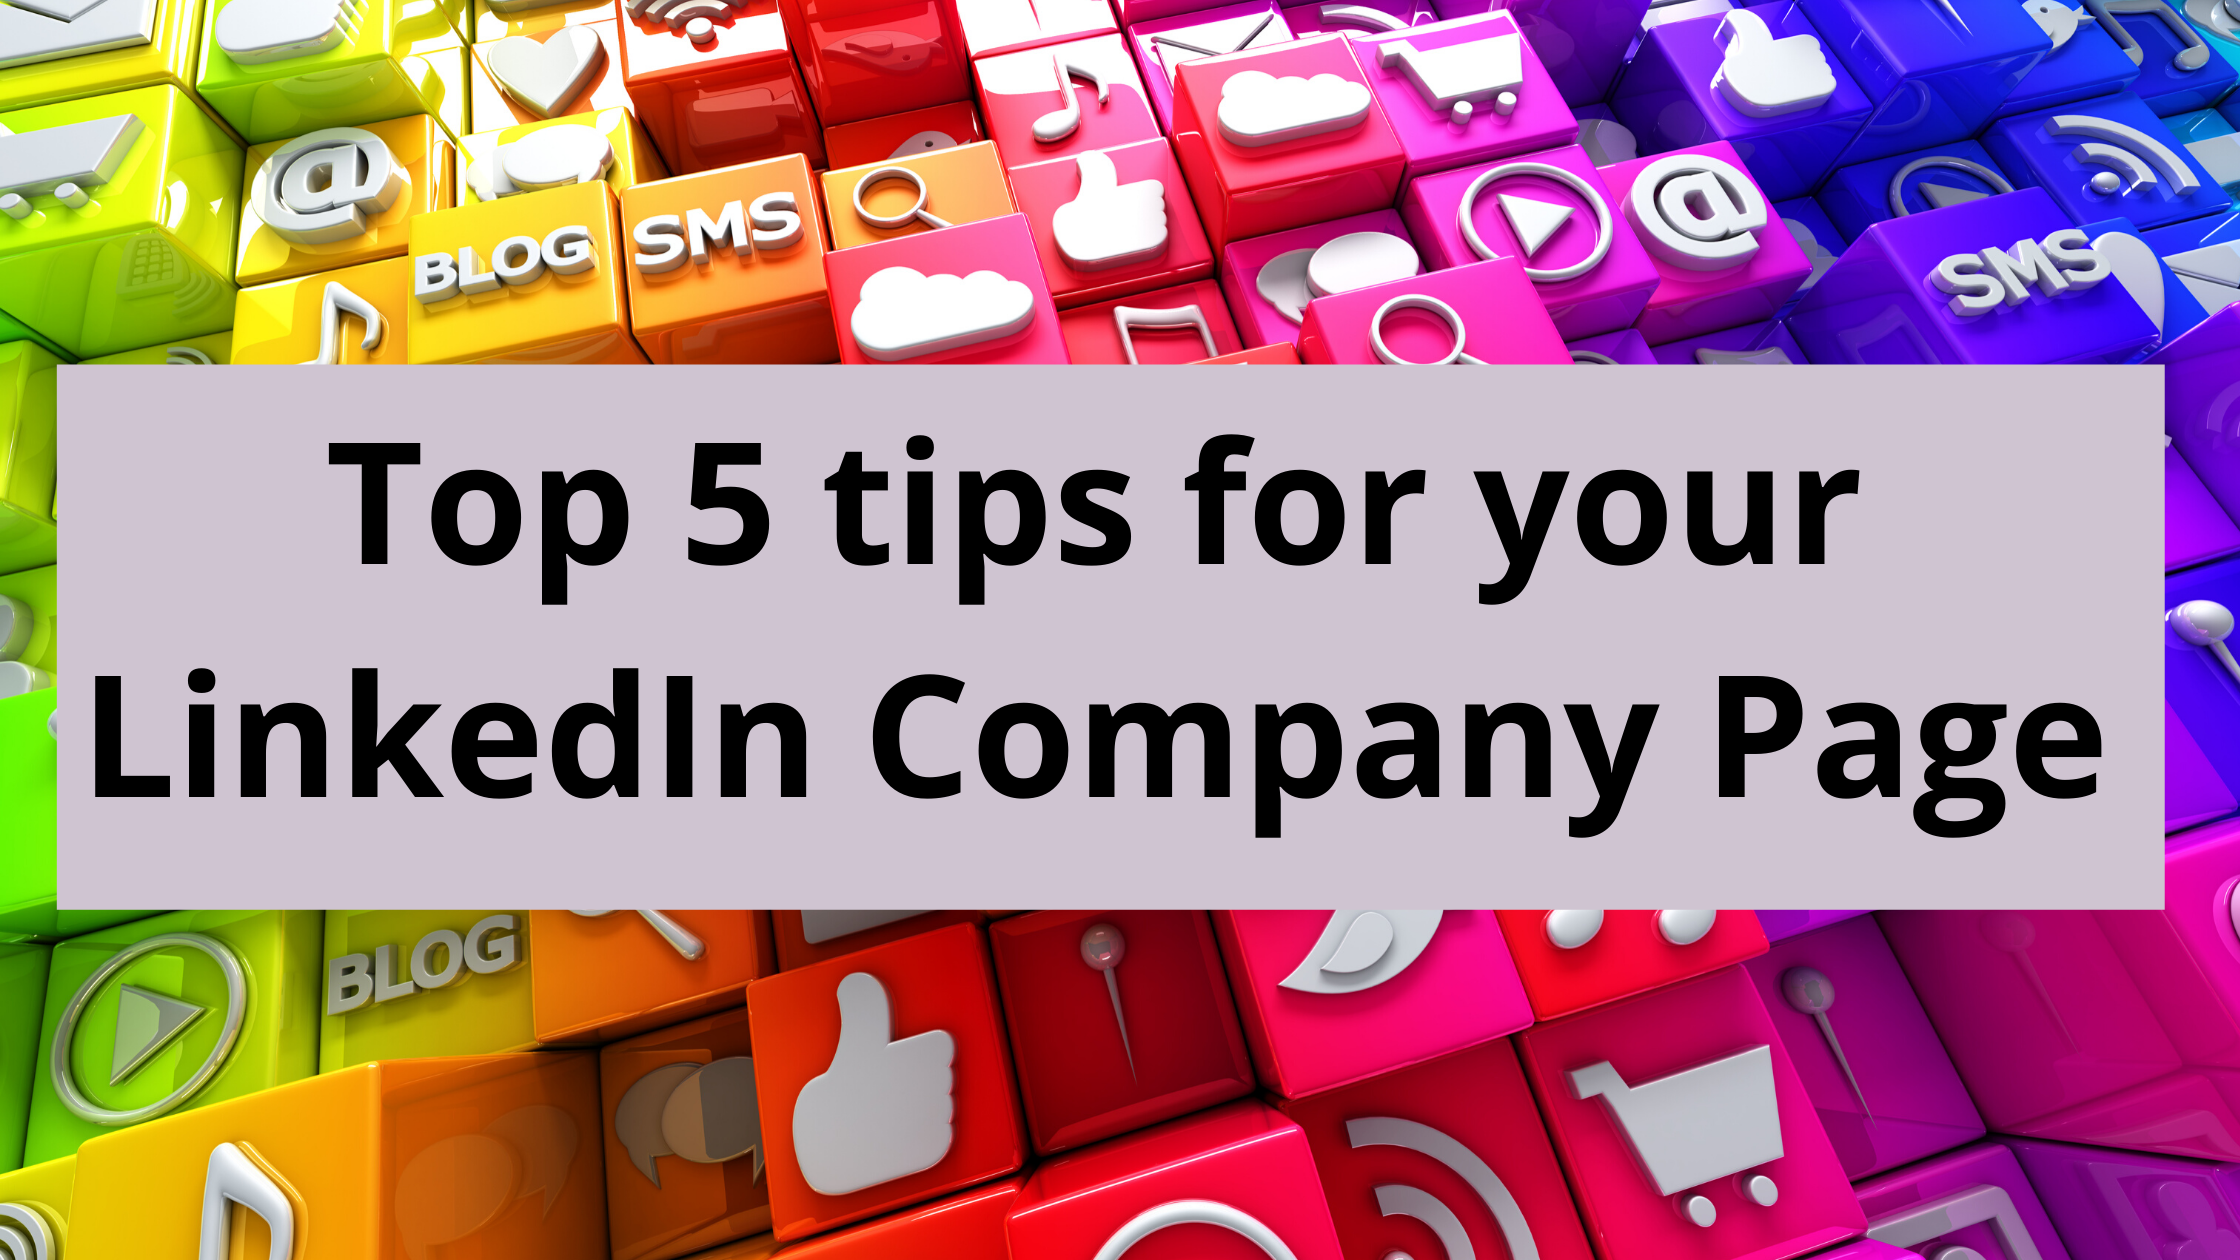 5 tips for your LinkedIn company page